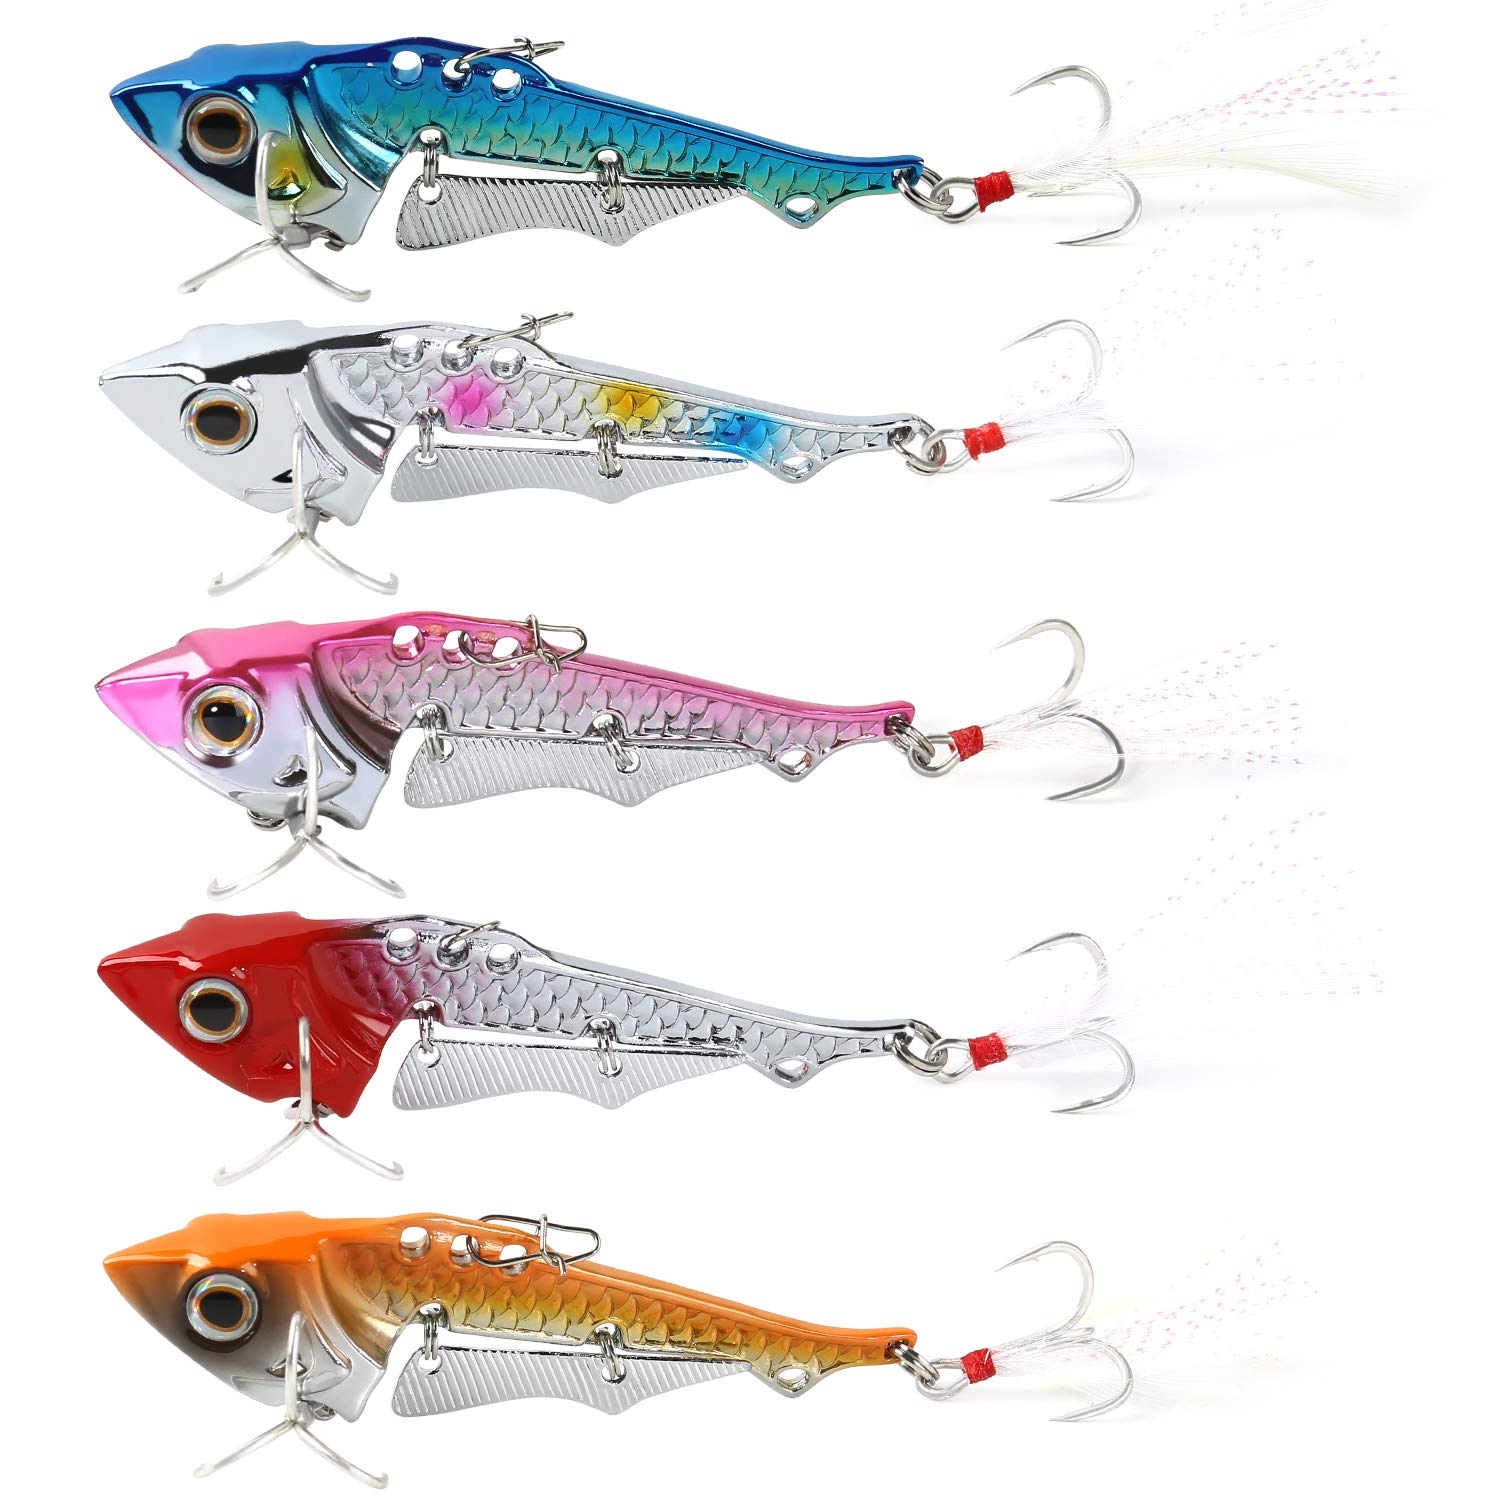 YONGZHI Fishing Lures Metal VIB Hard Spinner Blade Baits with Feathers Treble Hooks for Bass Walleyes Trout Fishing Spoons-40G by YONGZHI